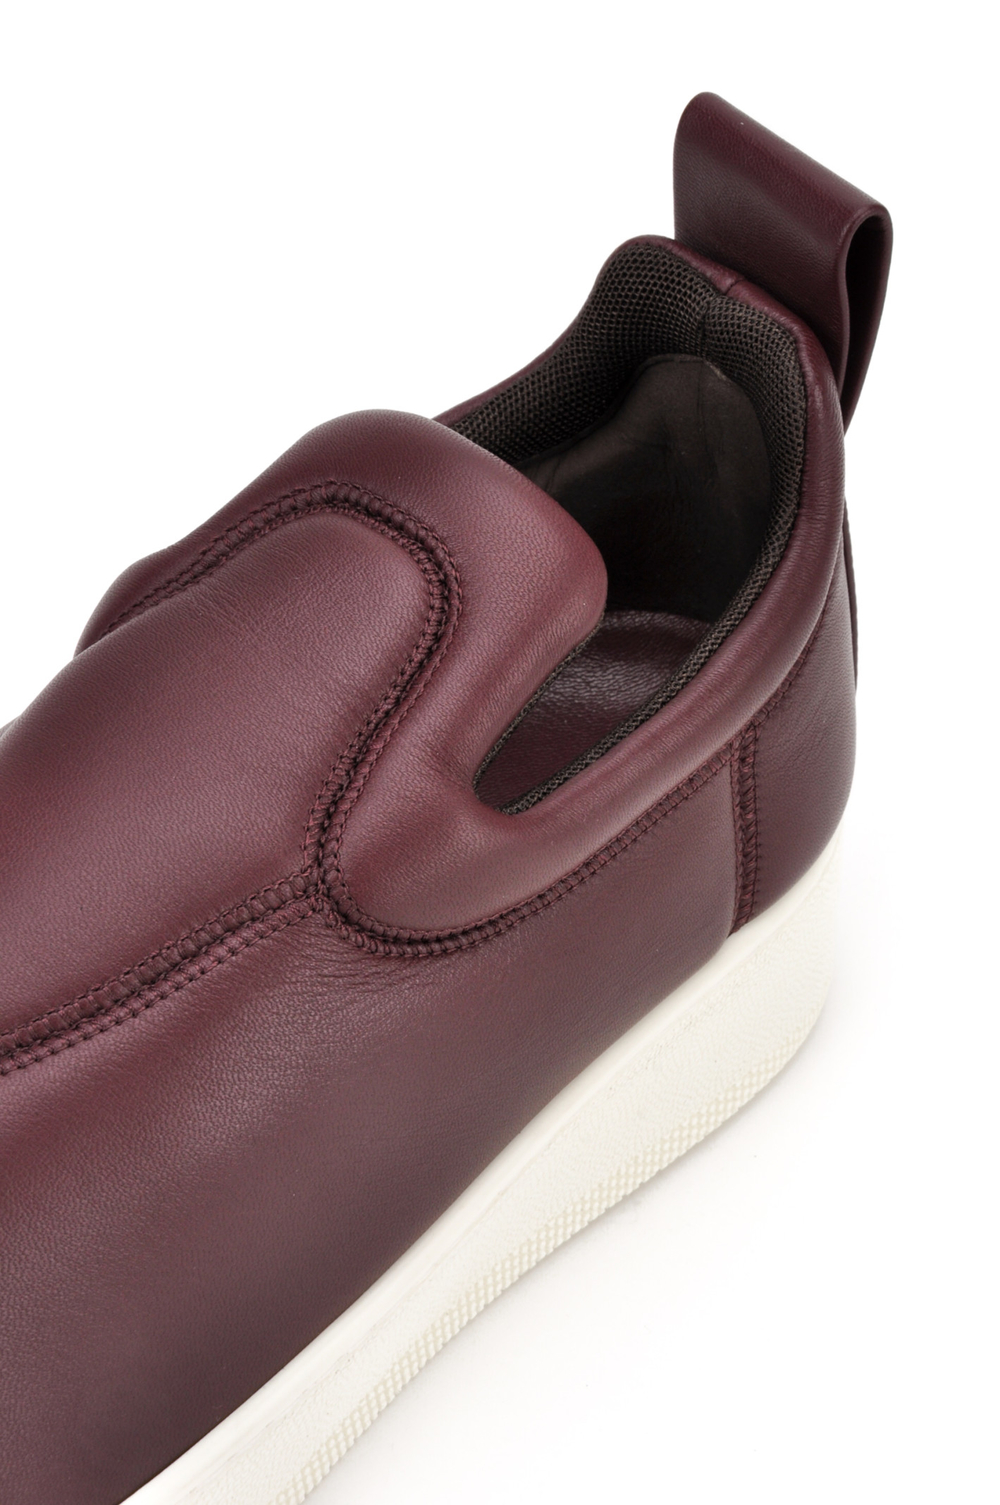 CELINE NAPPA STRETCH SNEAKERS IN BURGUNDY